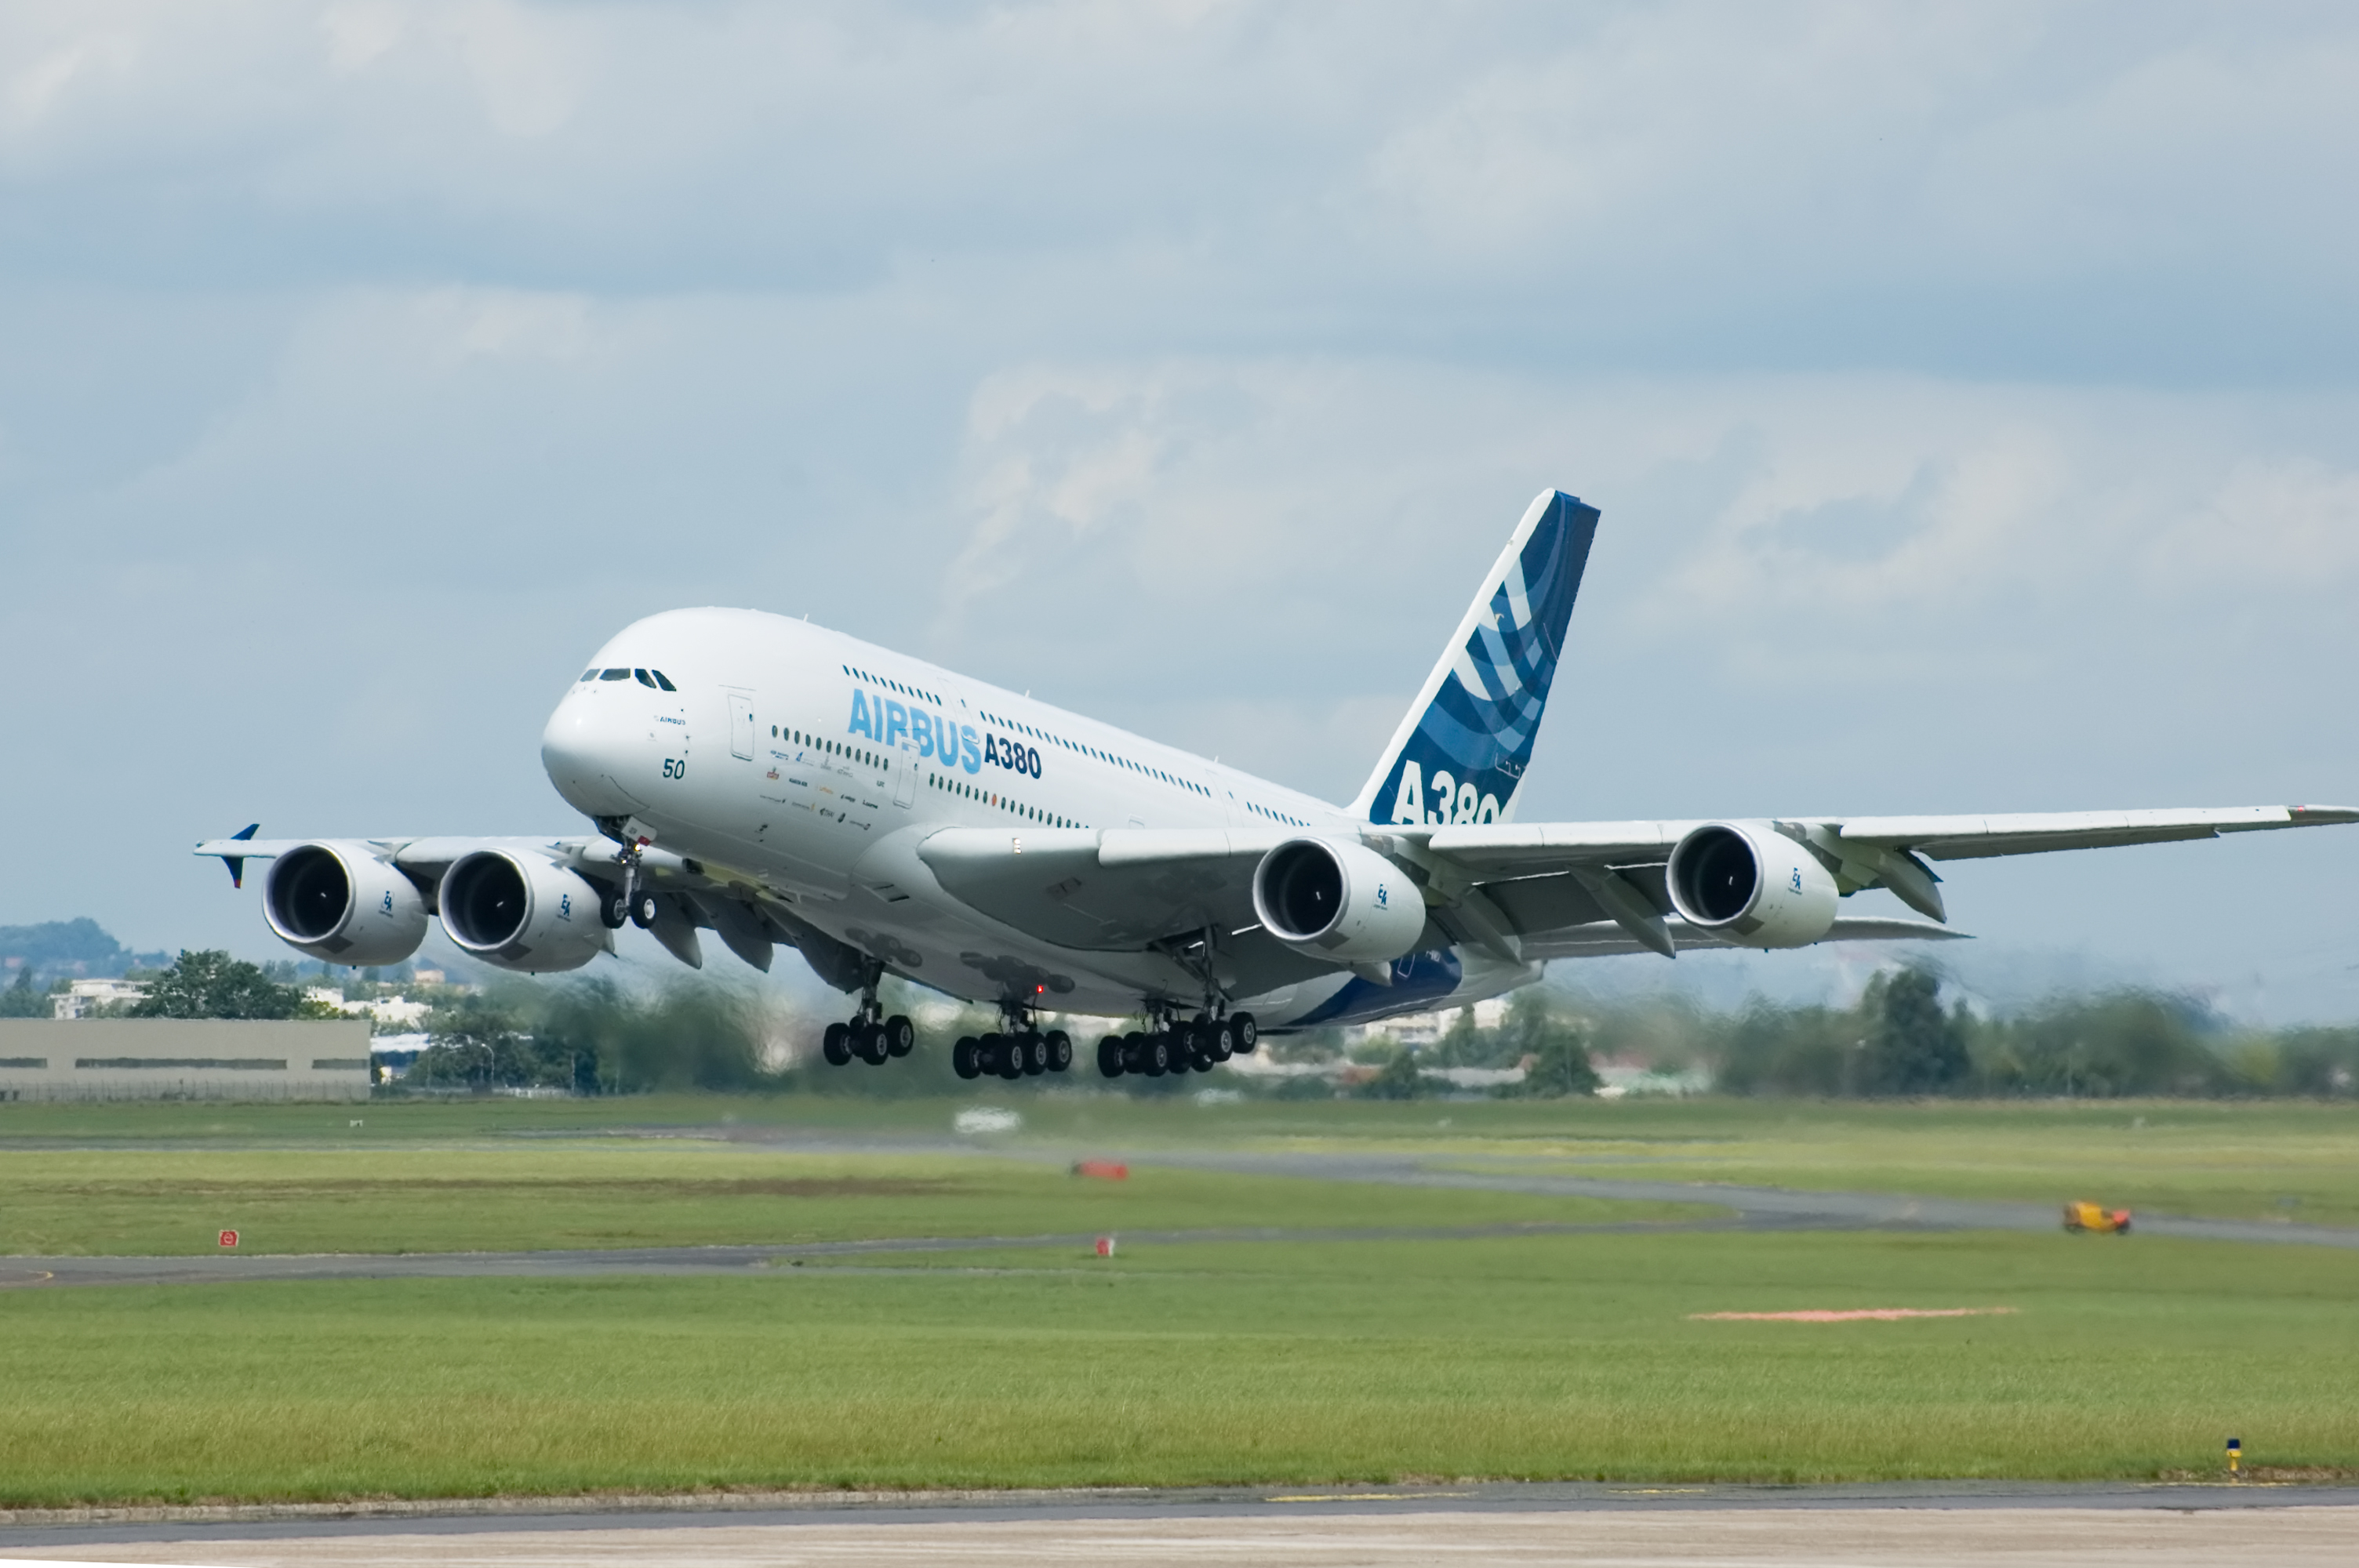 In one of the largest ever corporate fines for bribery, UK court asks Airbus to pay record £3bn in fines for 'endemic' corruption